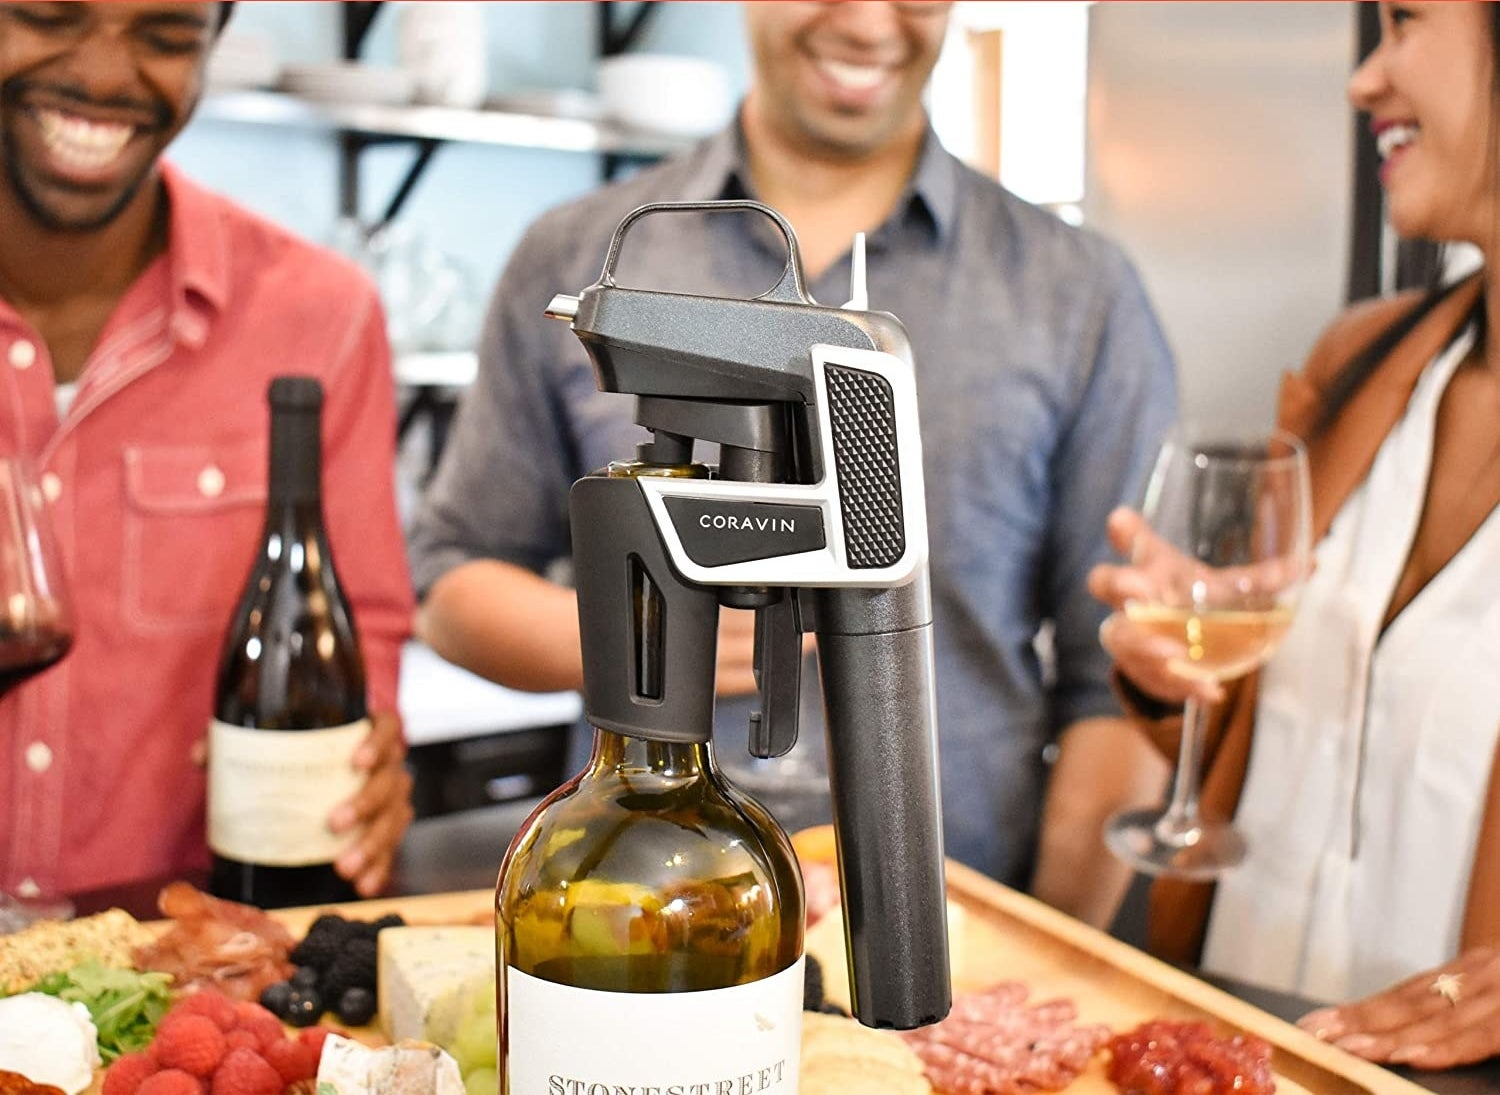 The wine opener on a bottle of wine with people gathered around it drinking glasses of wine